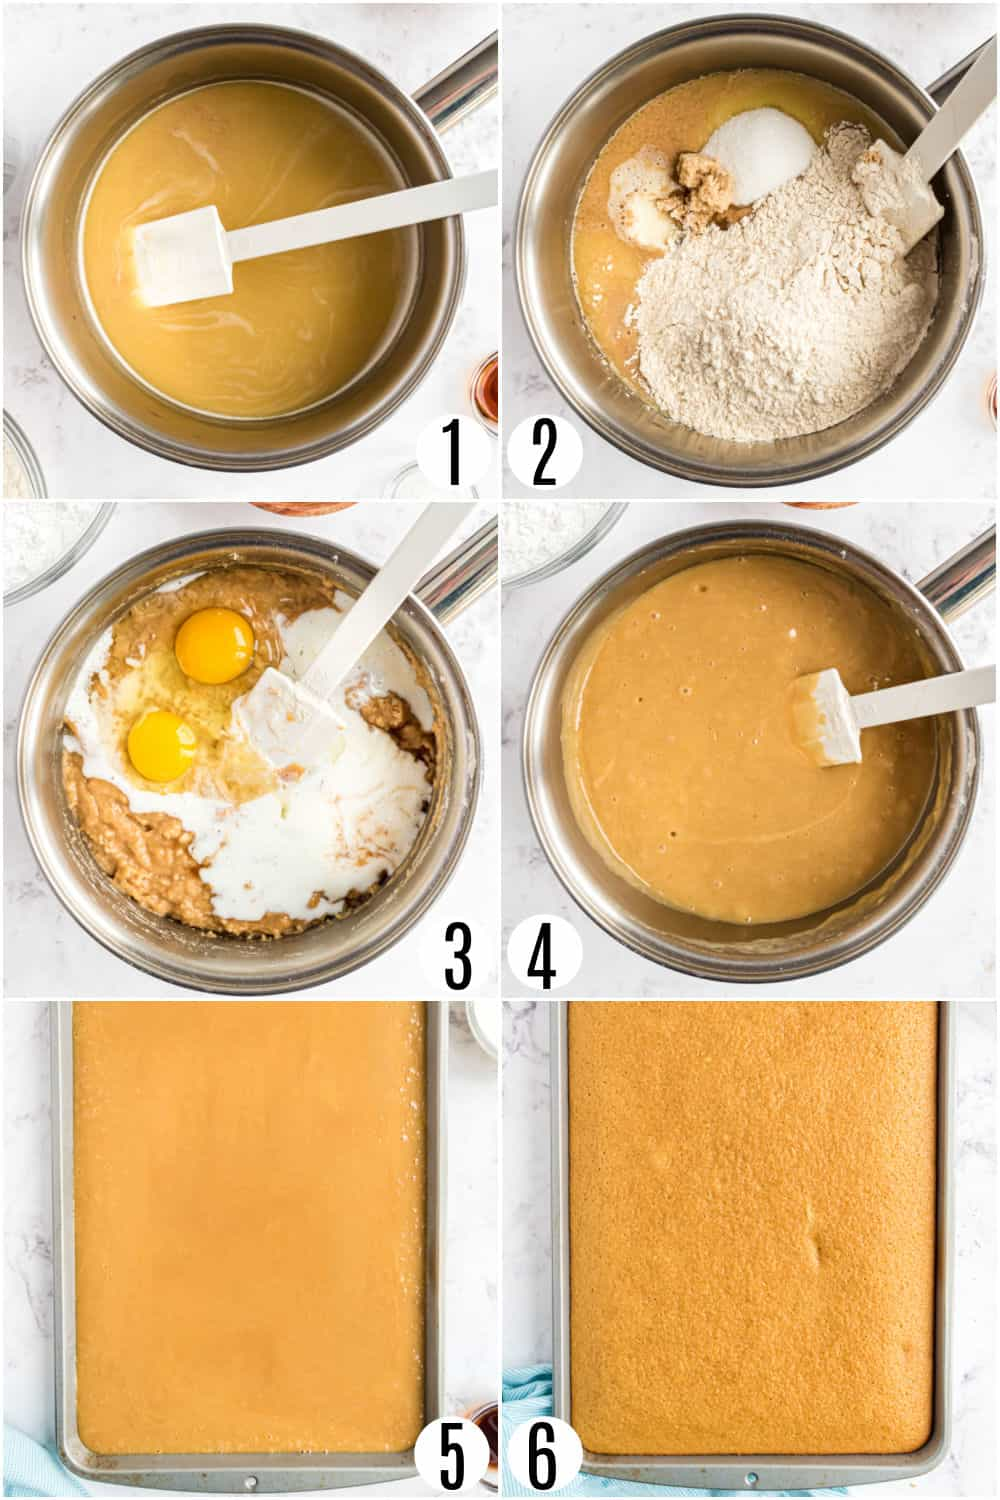 Step by step photos showing how to make peanut butter cake.